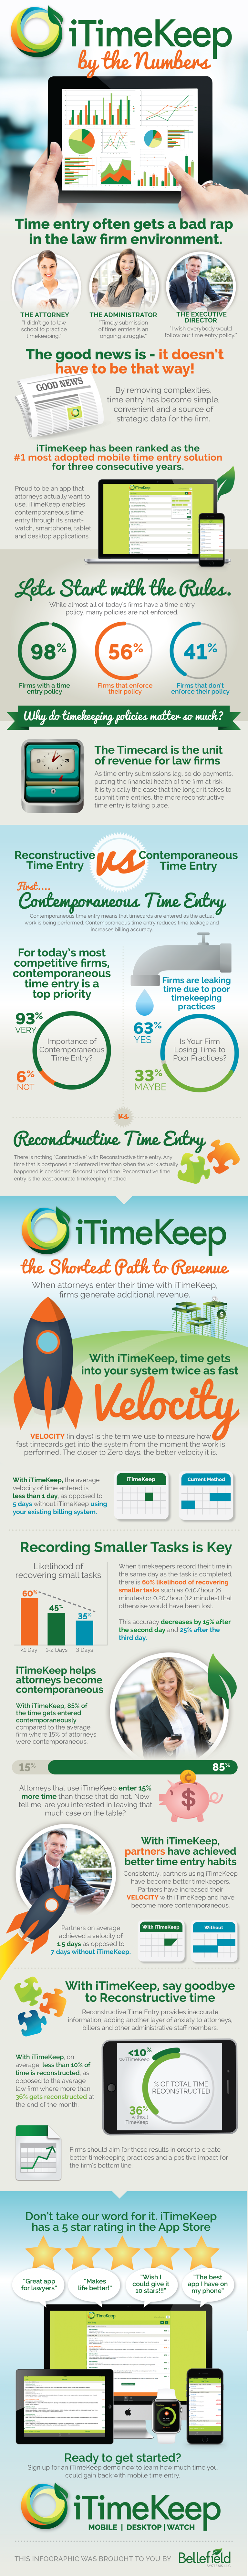 [Infographic] iTimeKeep by the Numbers